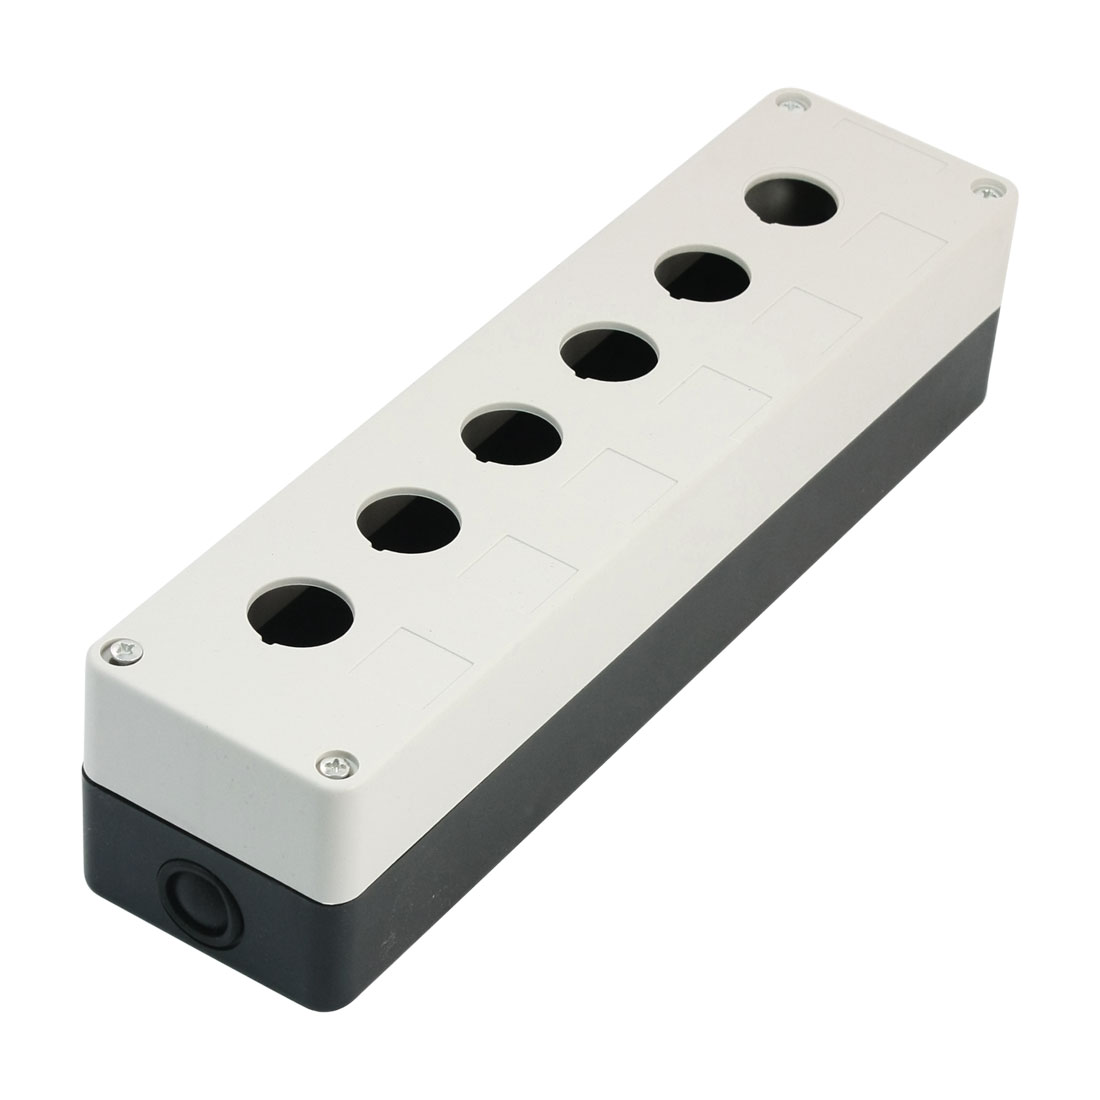 22mm Dia Hole 6 Station Rectangle White Black Plastic Push Button Switch Control Box Guard Cover Protector 270mm x 70mm x 65mm